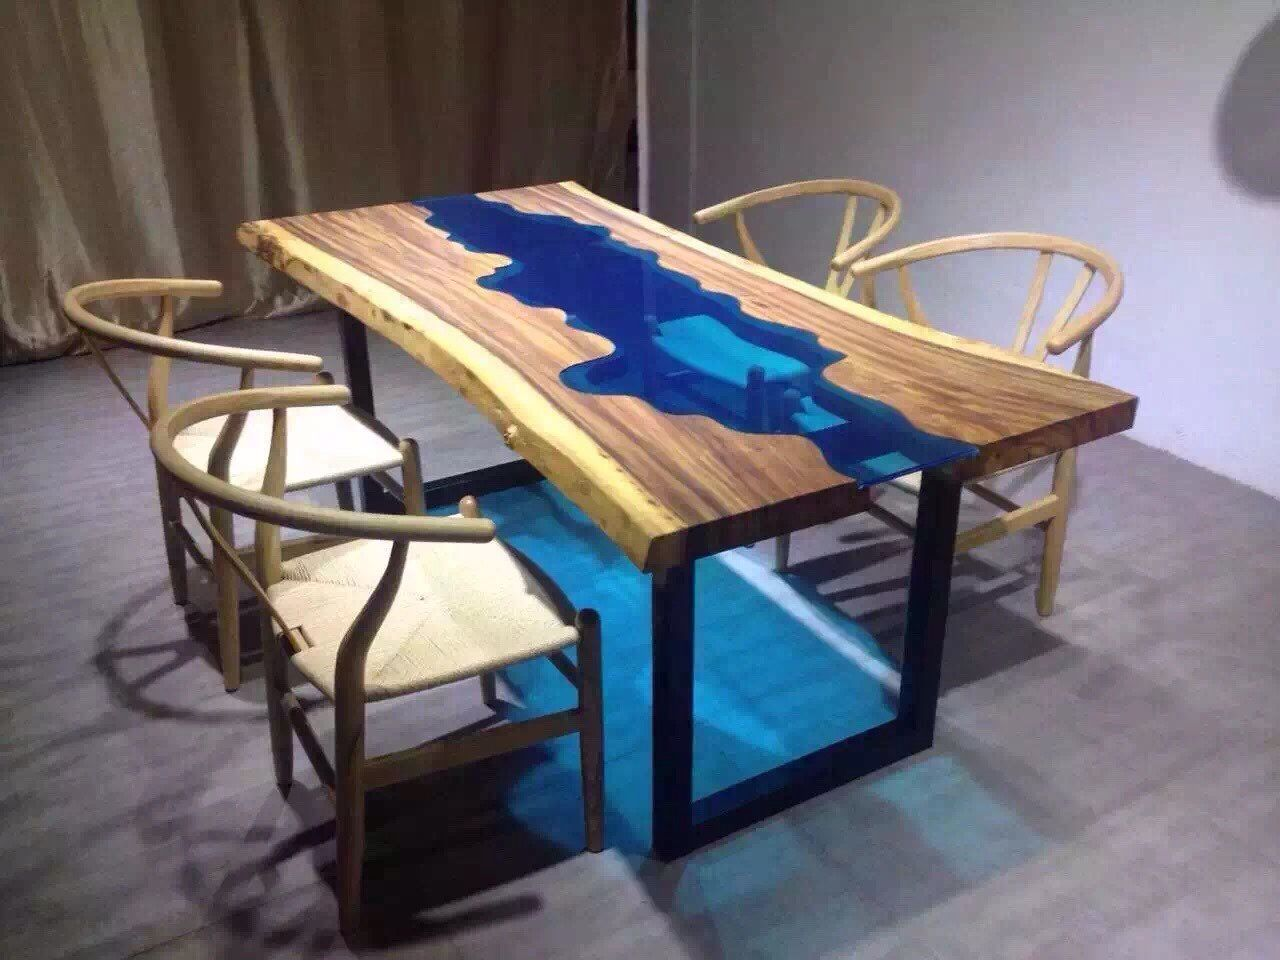 Custom Made Acacia Live Edge River Wood And Glass Dining Table By Chitownfurniture